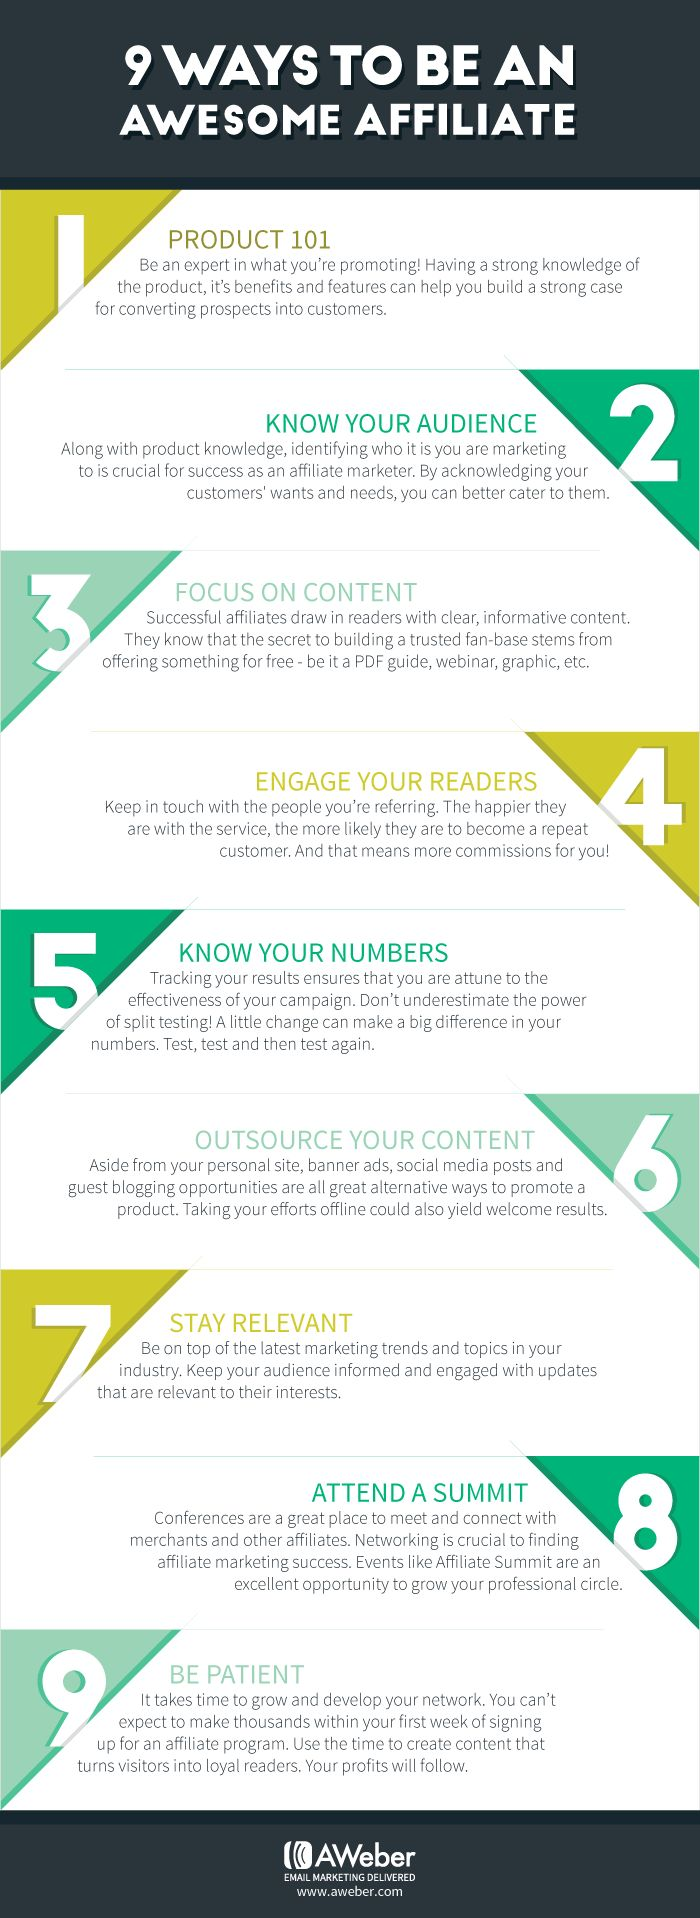 9 Ways You Can Become An Affiliate All-Star - http://blog.aweber.com/articles-tips/9-ways-you-can-become-an-affiliate-all-star.htm?utm_source=AW&utm_medium=social&utm_content=pinterest